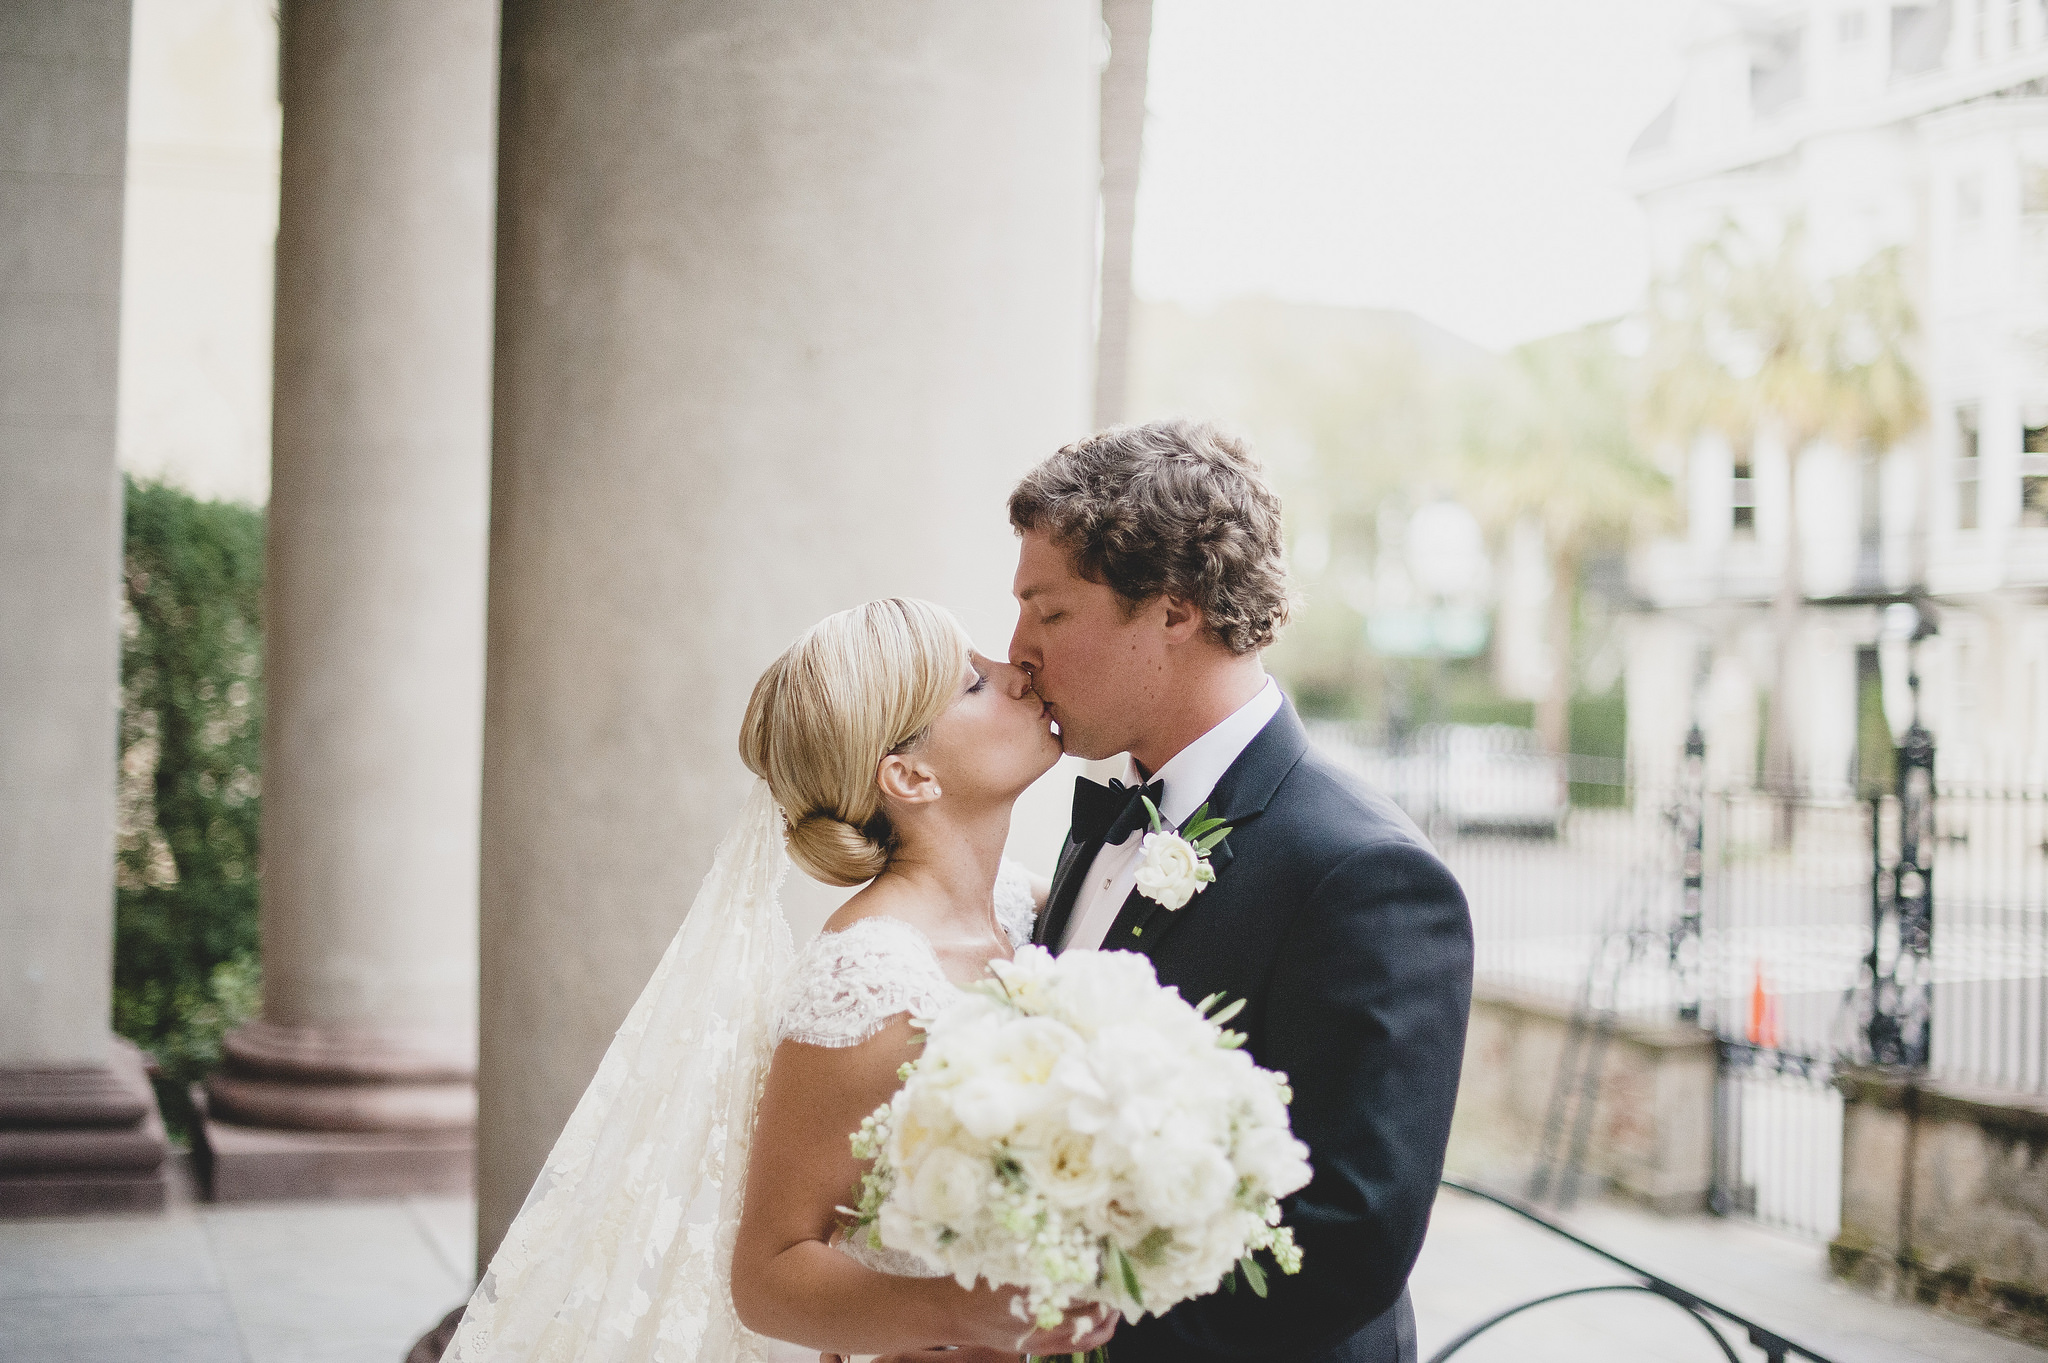 The special kiss right after exiting the church from the ceremony!